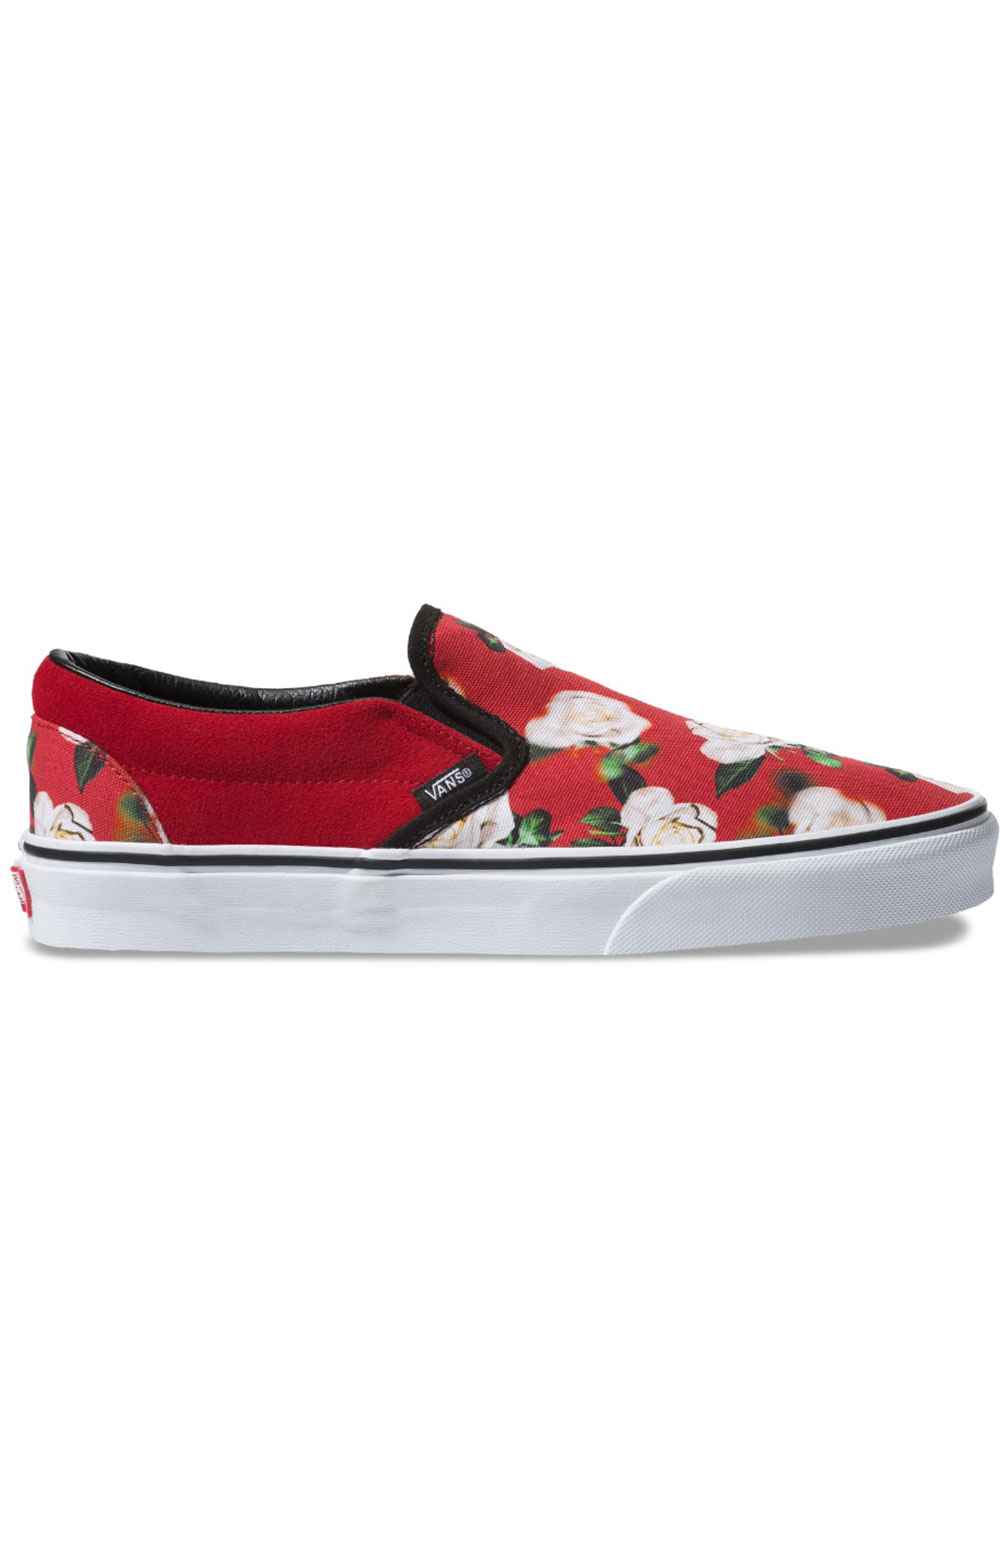 (8F7VMI) Romantic Floral Classic Slip-On Shoe - Chili Pepper